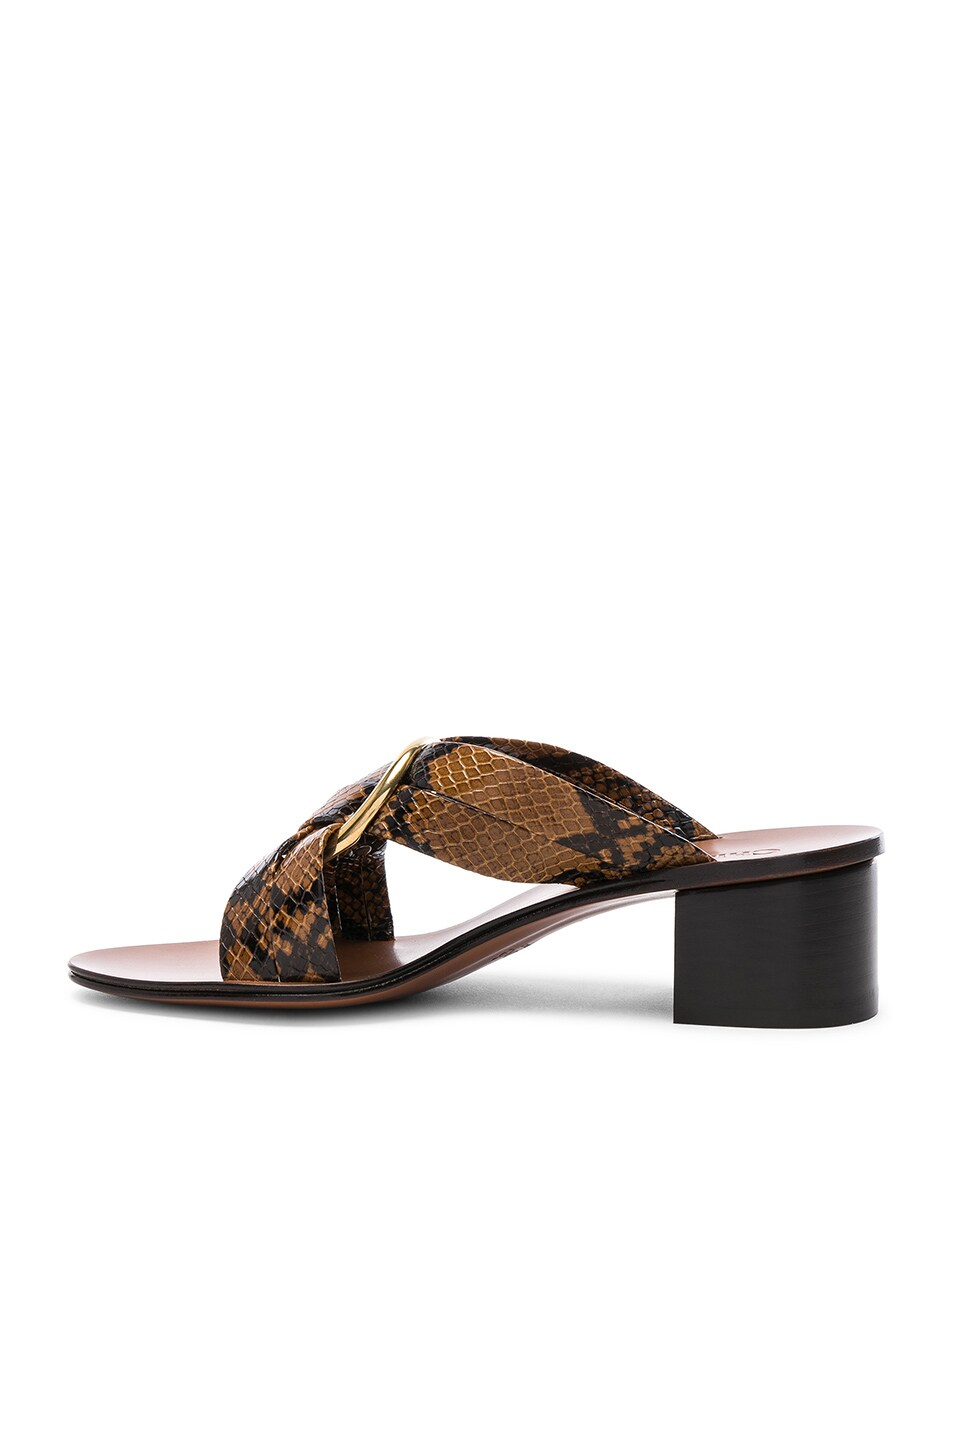 Image 5 of Chloe Rony Python Print Leather Cross Strap Mules in Light Tan